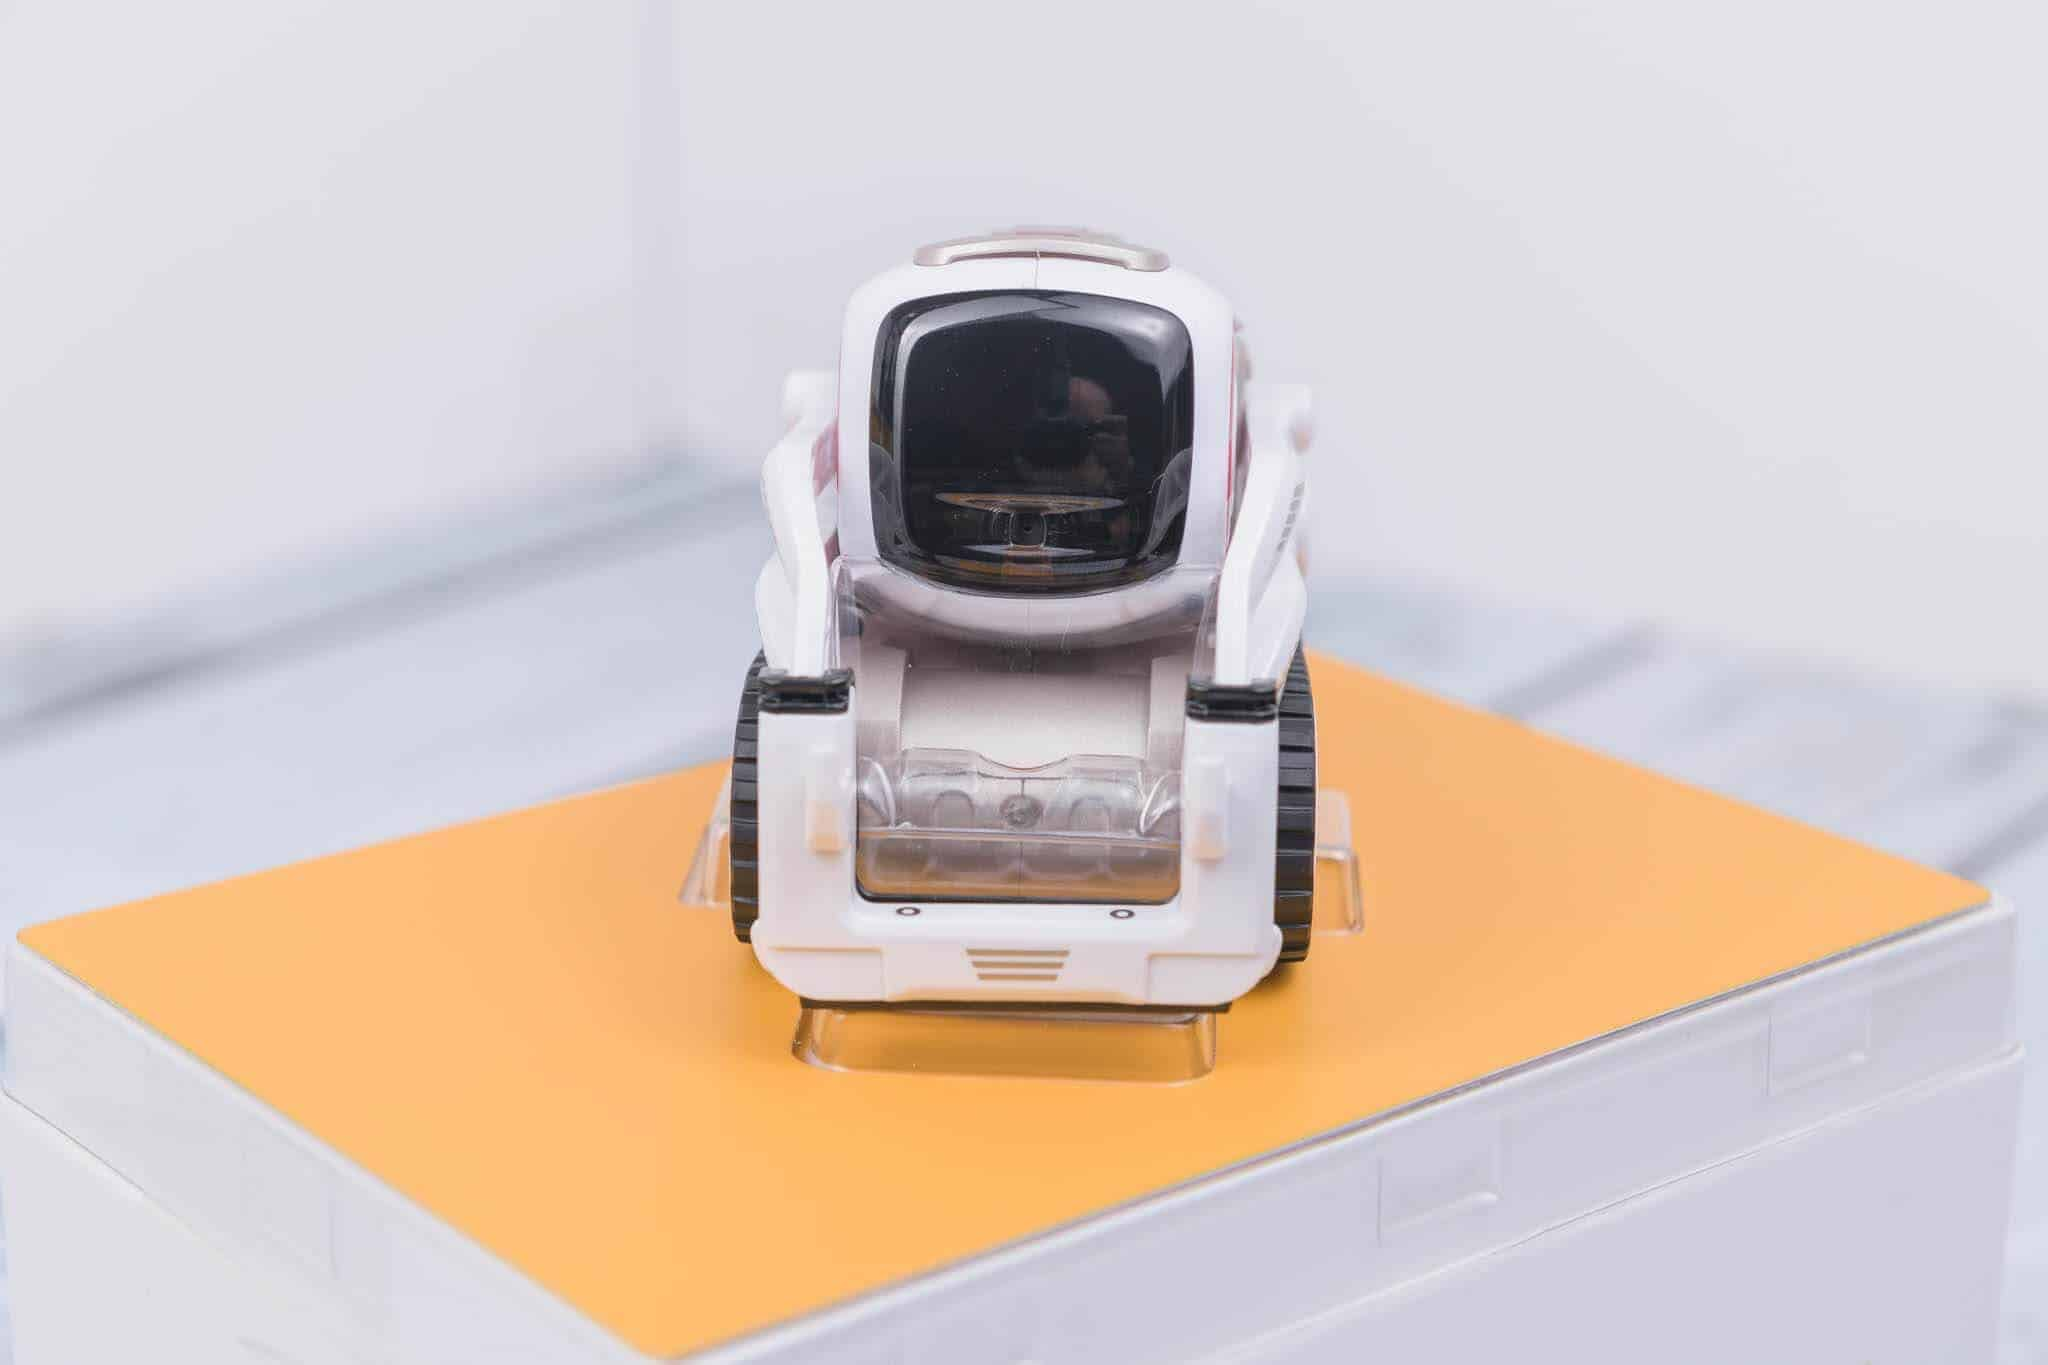 Anki Cozmo Robot Review - Just Out of the Box